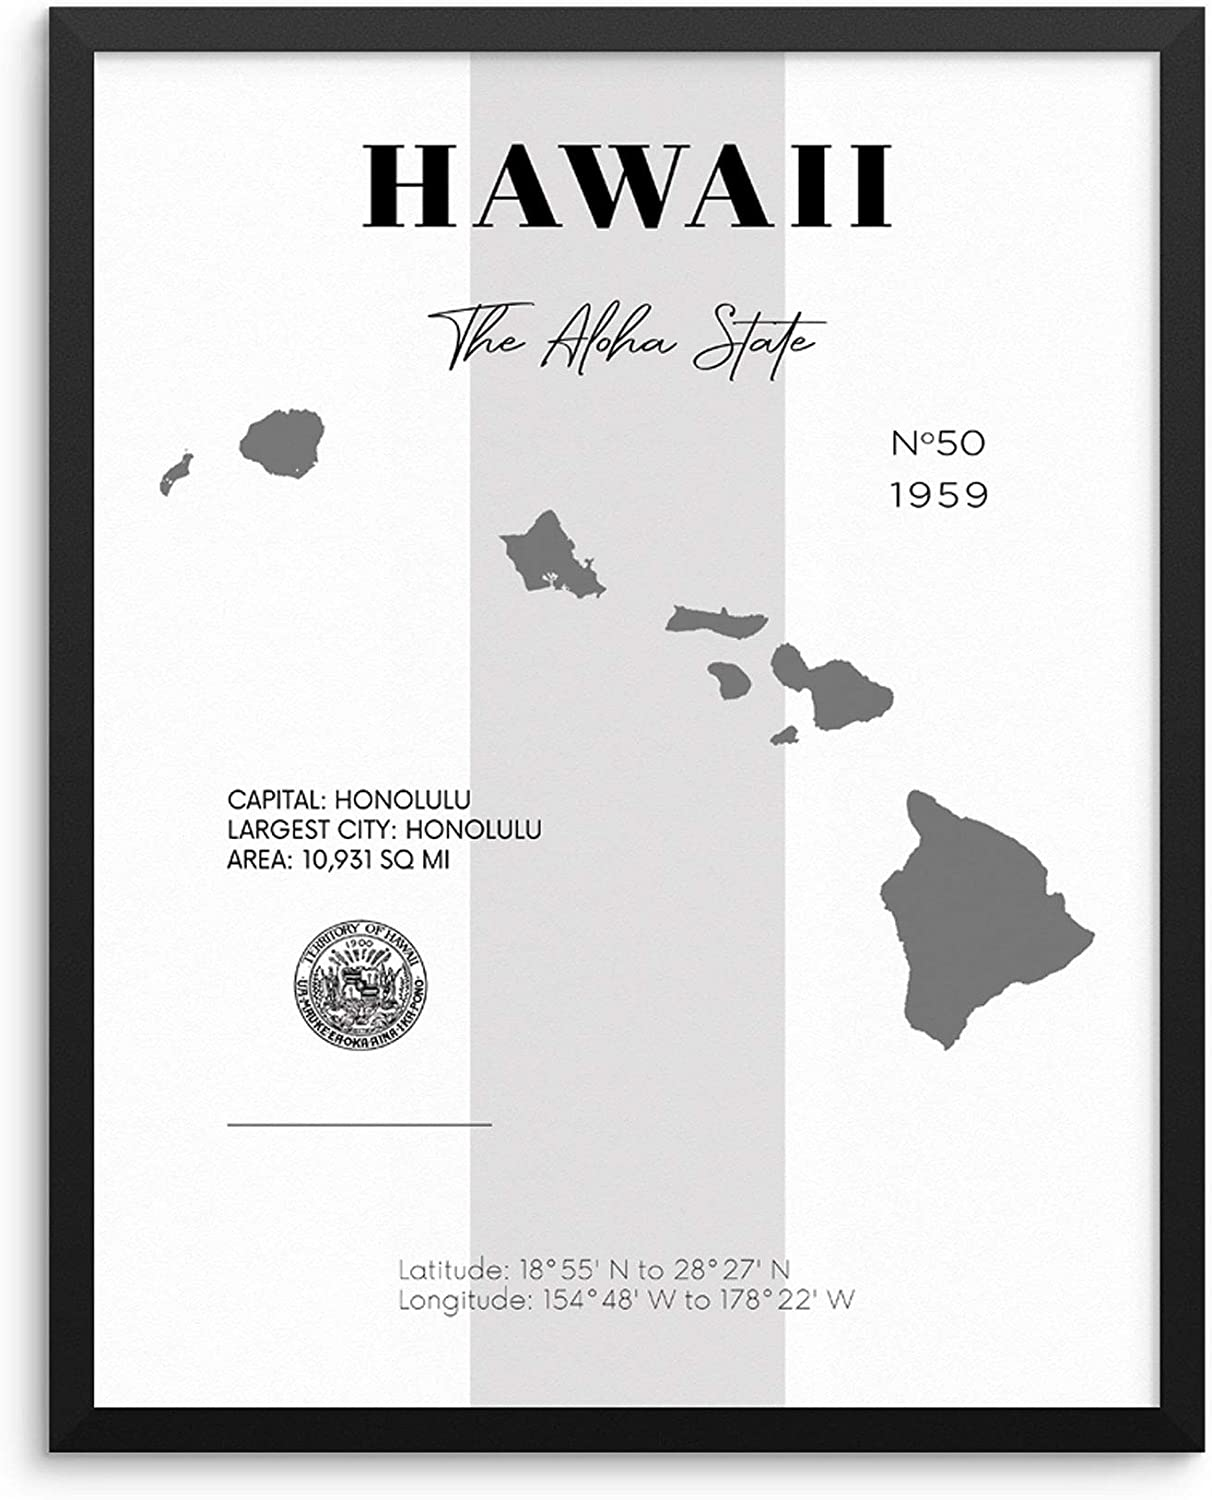 Hawaii State Map Poster With Demographics Minimalist Home Decor Travel Art  Print 20x20 UNFRAMED Trendy Artwork for Bedroom Living Room Entryway Office  ...